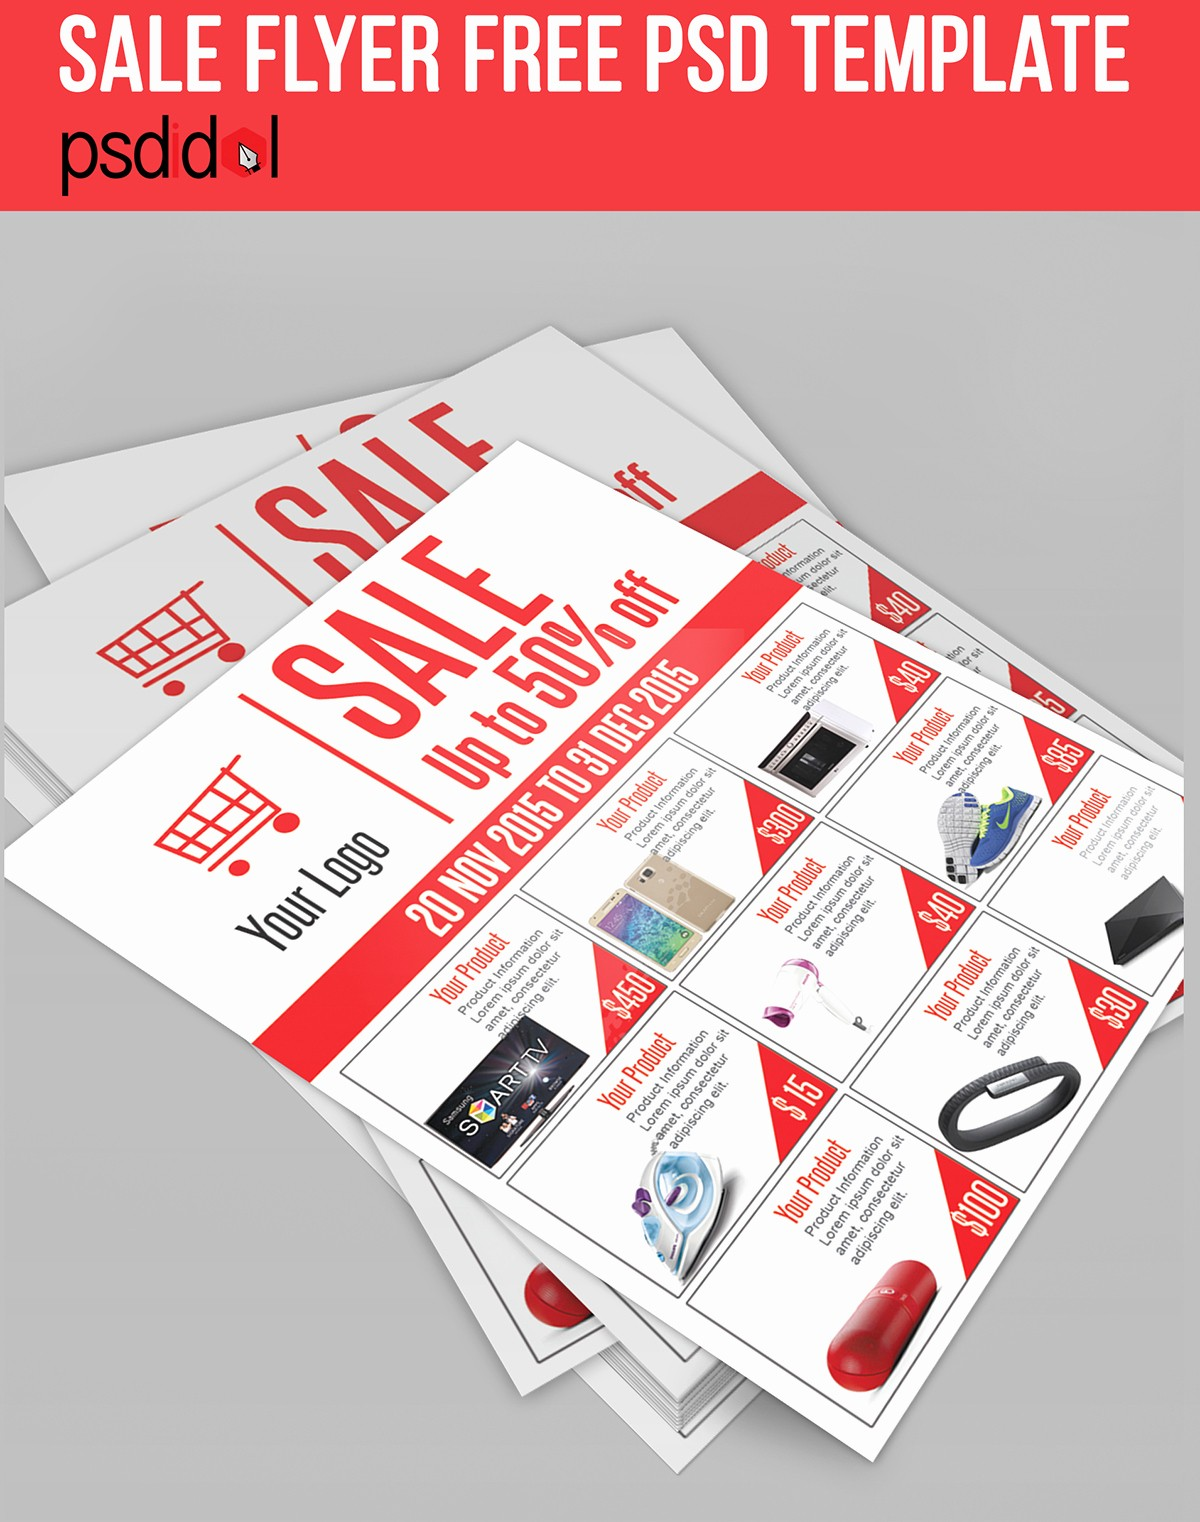 Product Catalogue Templates Free Download Beautiful Sale Flyer Free Psd Template Download On Behance